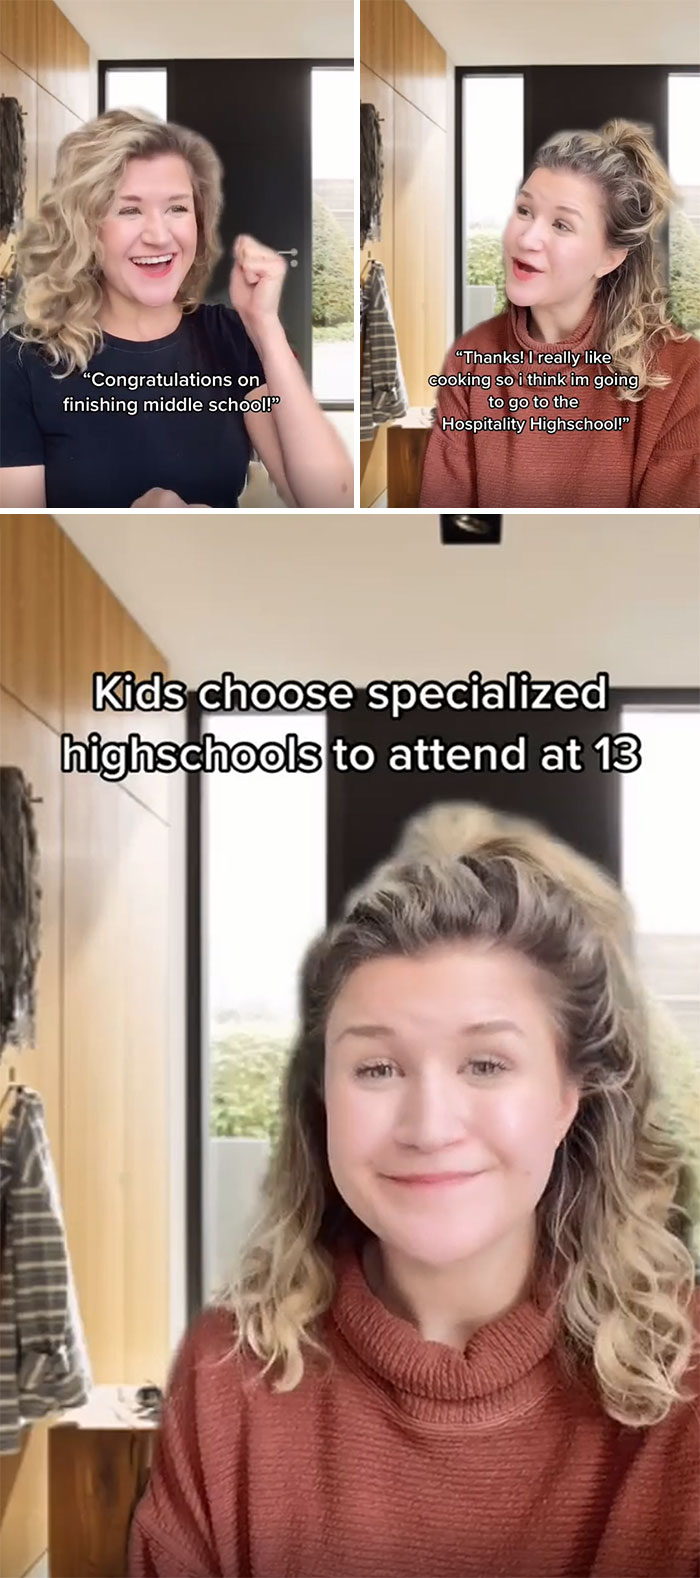 Kids Choose Specialized Highschools To Attend At 13